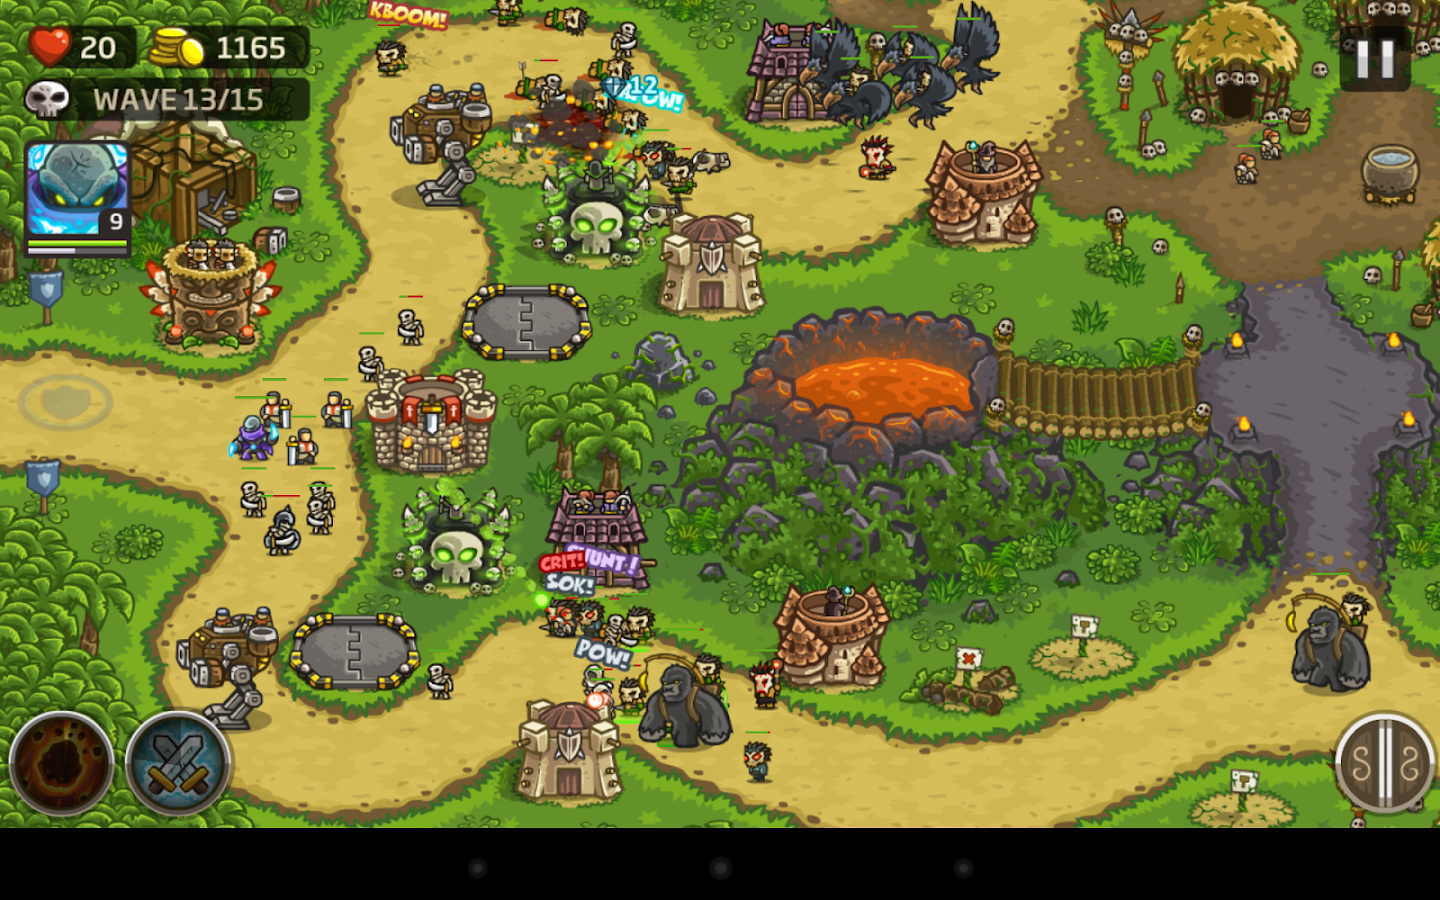 Kingdom rush frontiers review - Kingdom Rush Frontiers Guide Screenshot